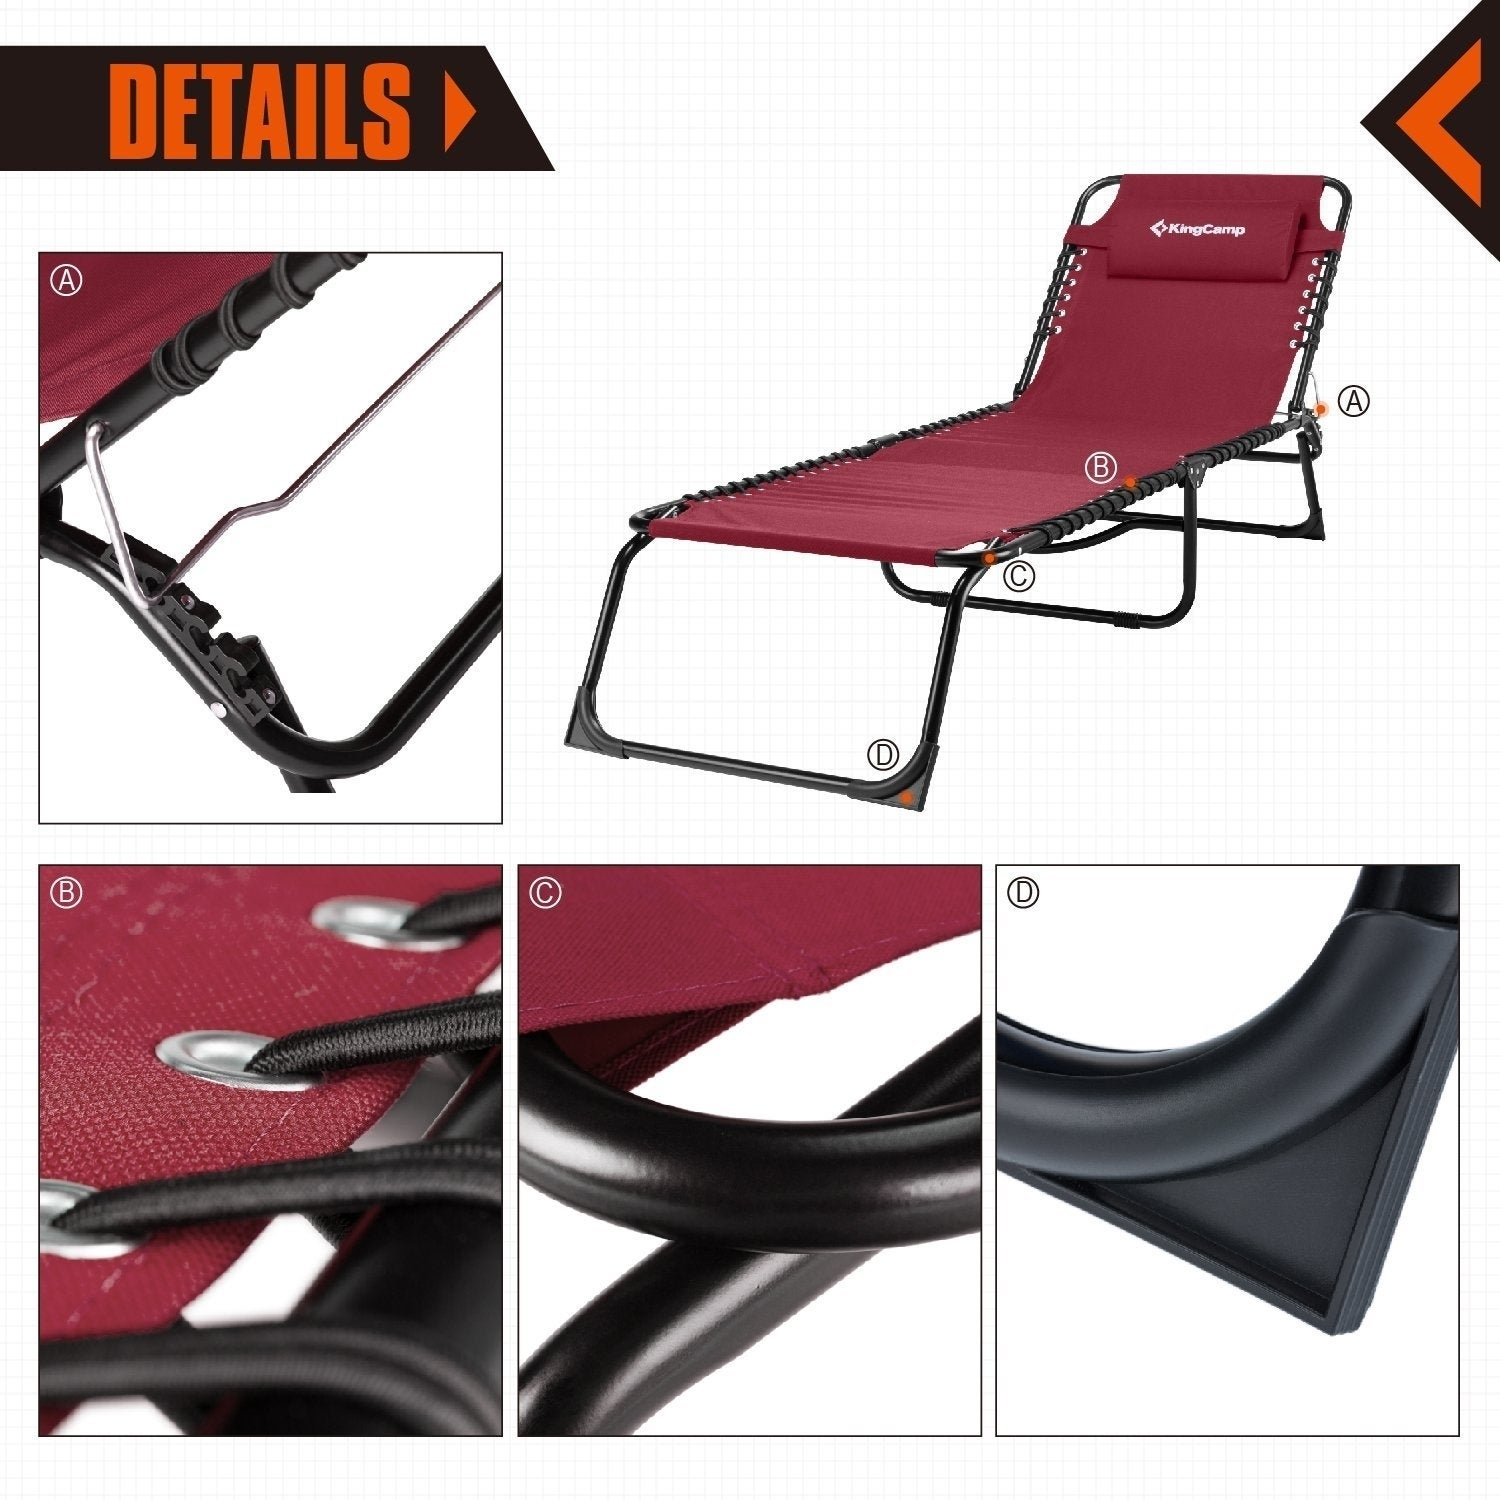 57f28eac0a8c Shop Patio Lounge Chair 3 Reclining Positions Steel Frame 600D Oxford  Folding Camping Cot Chaise Bed - Free Shipping Today - Overstock - 20657834